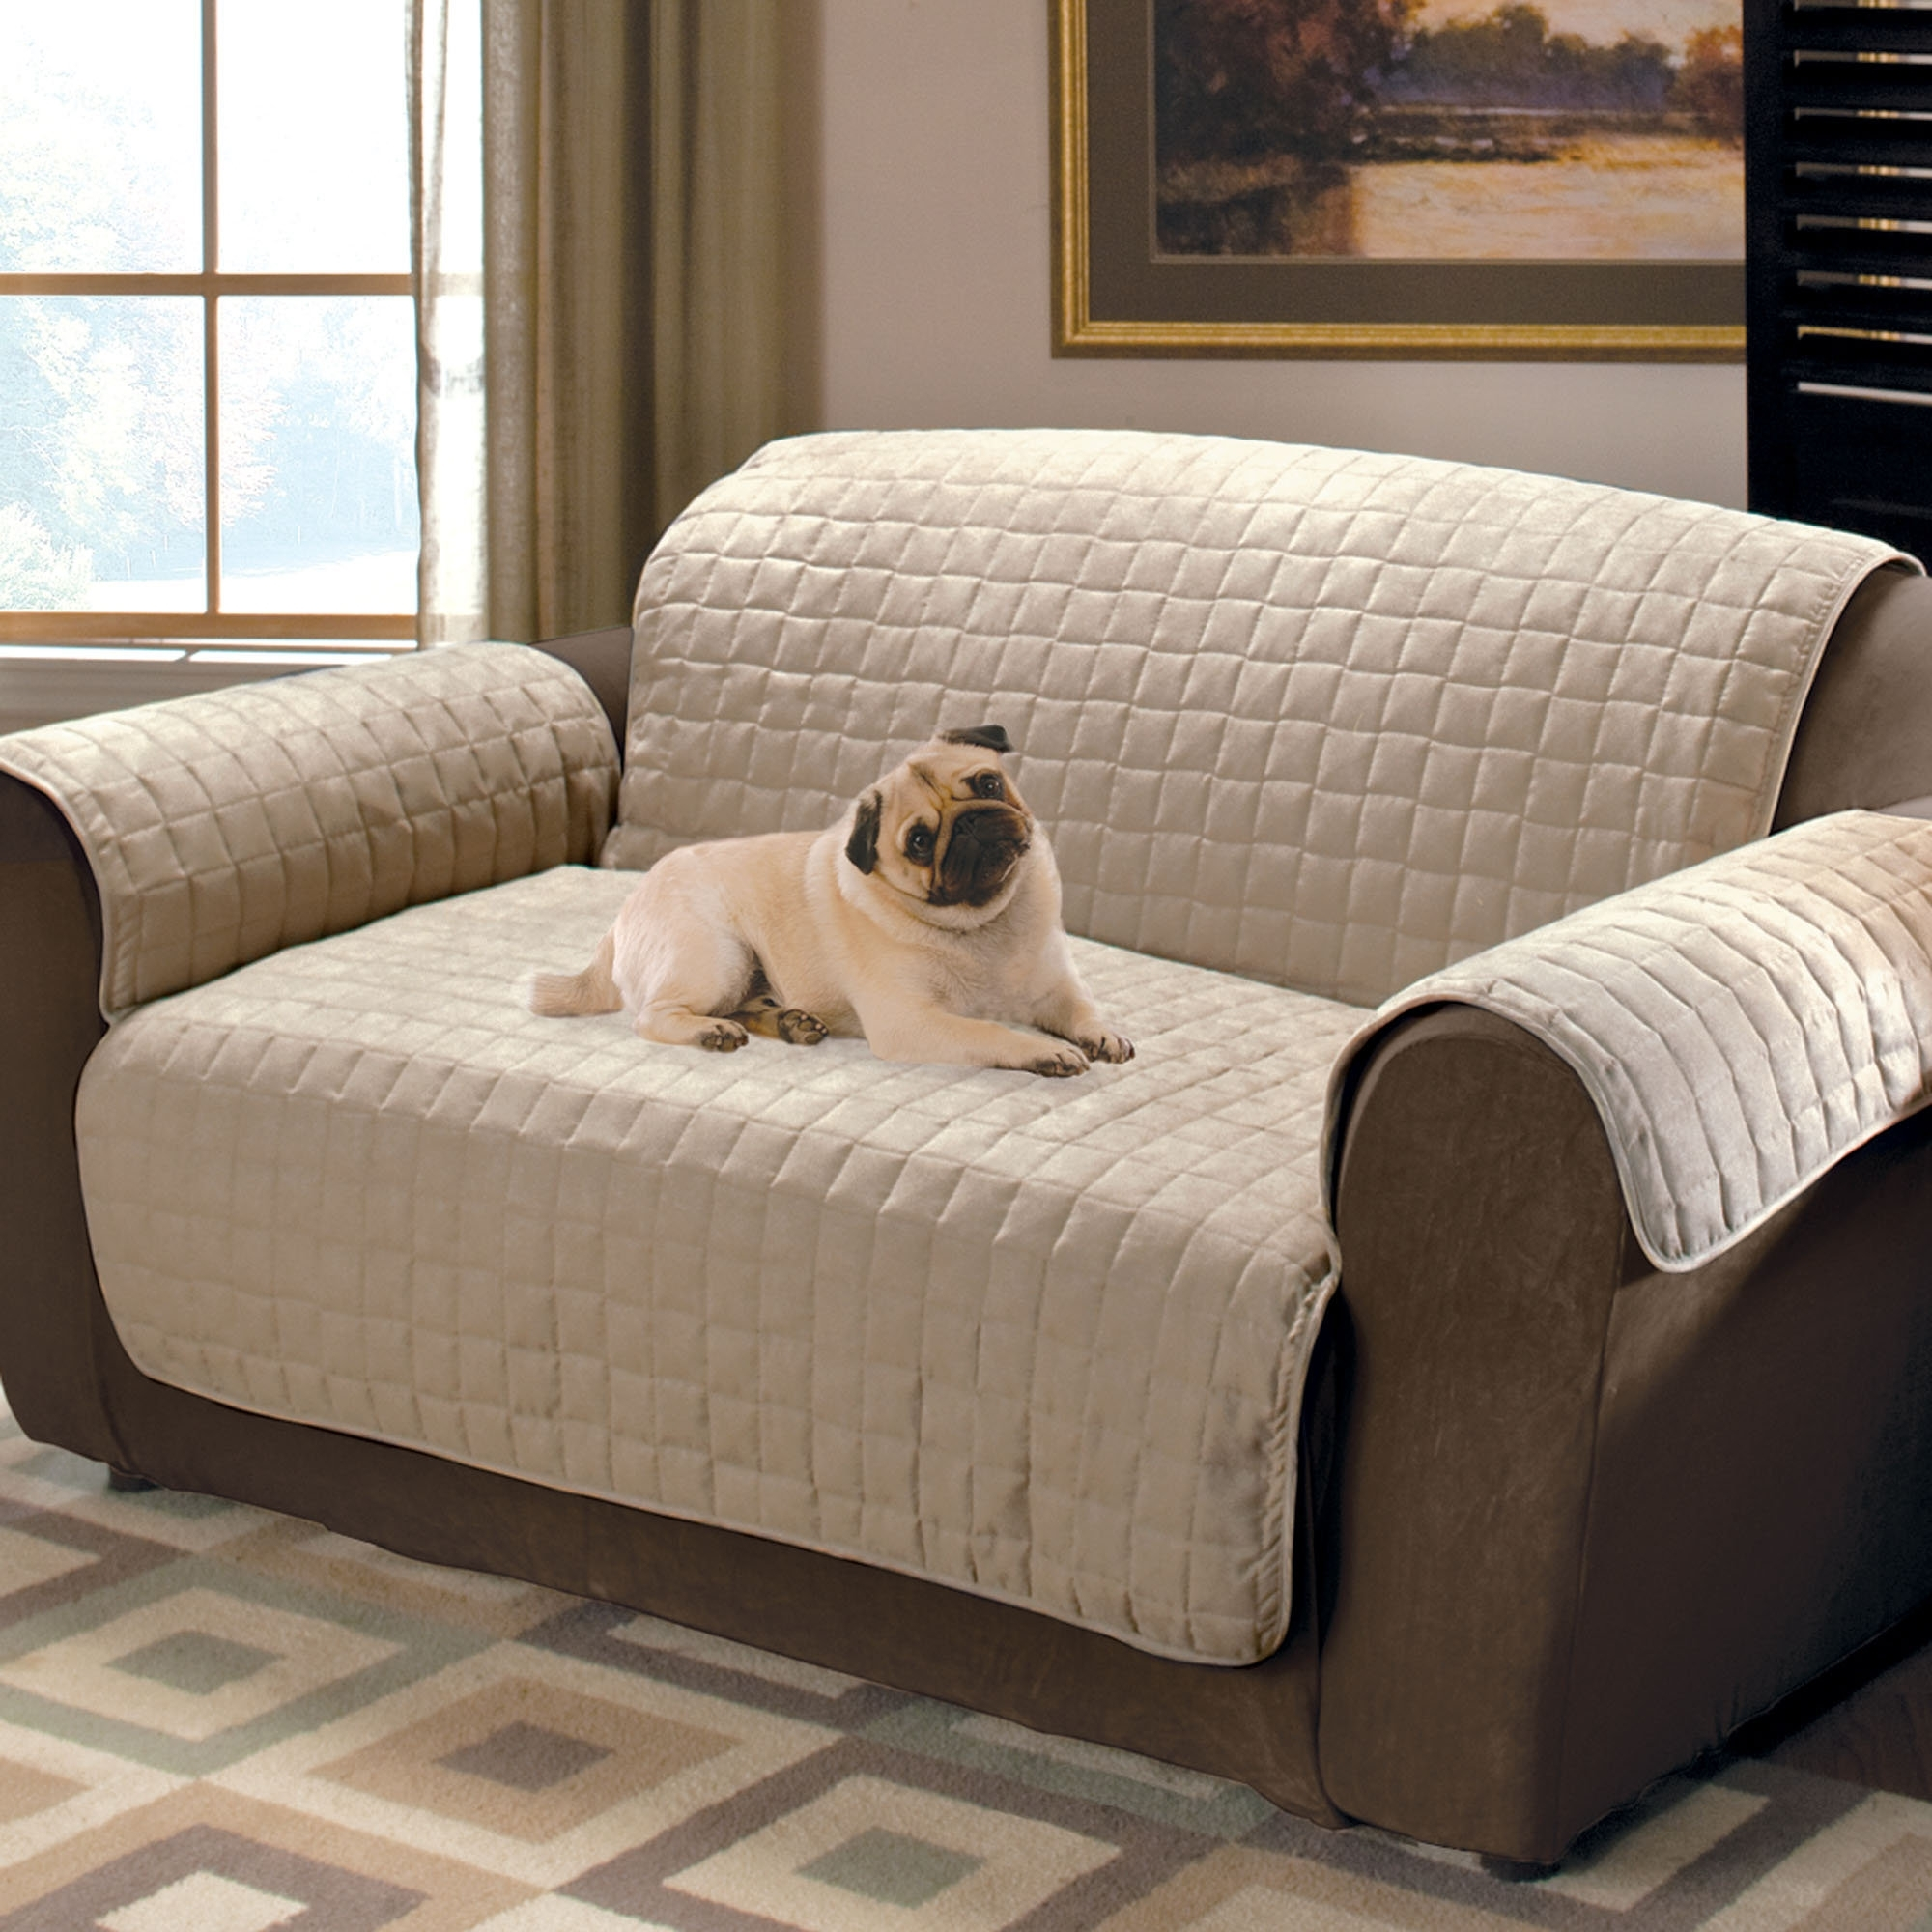 Most Recently Released Sofa Slipcover : Sofas With Removable Covers 3 Piece Suite Covers Within Removable Covers Sectional Sofas (View 9 of 20)